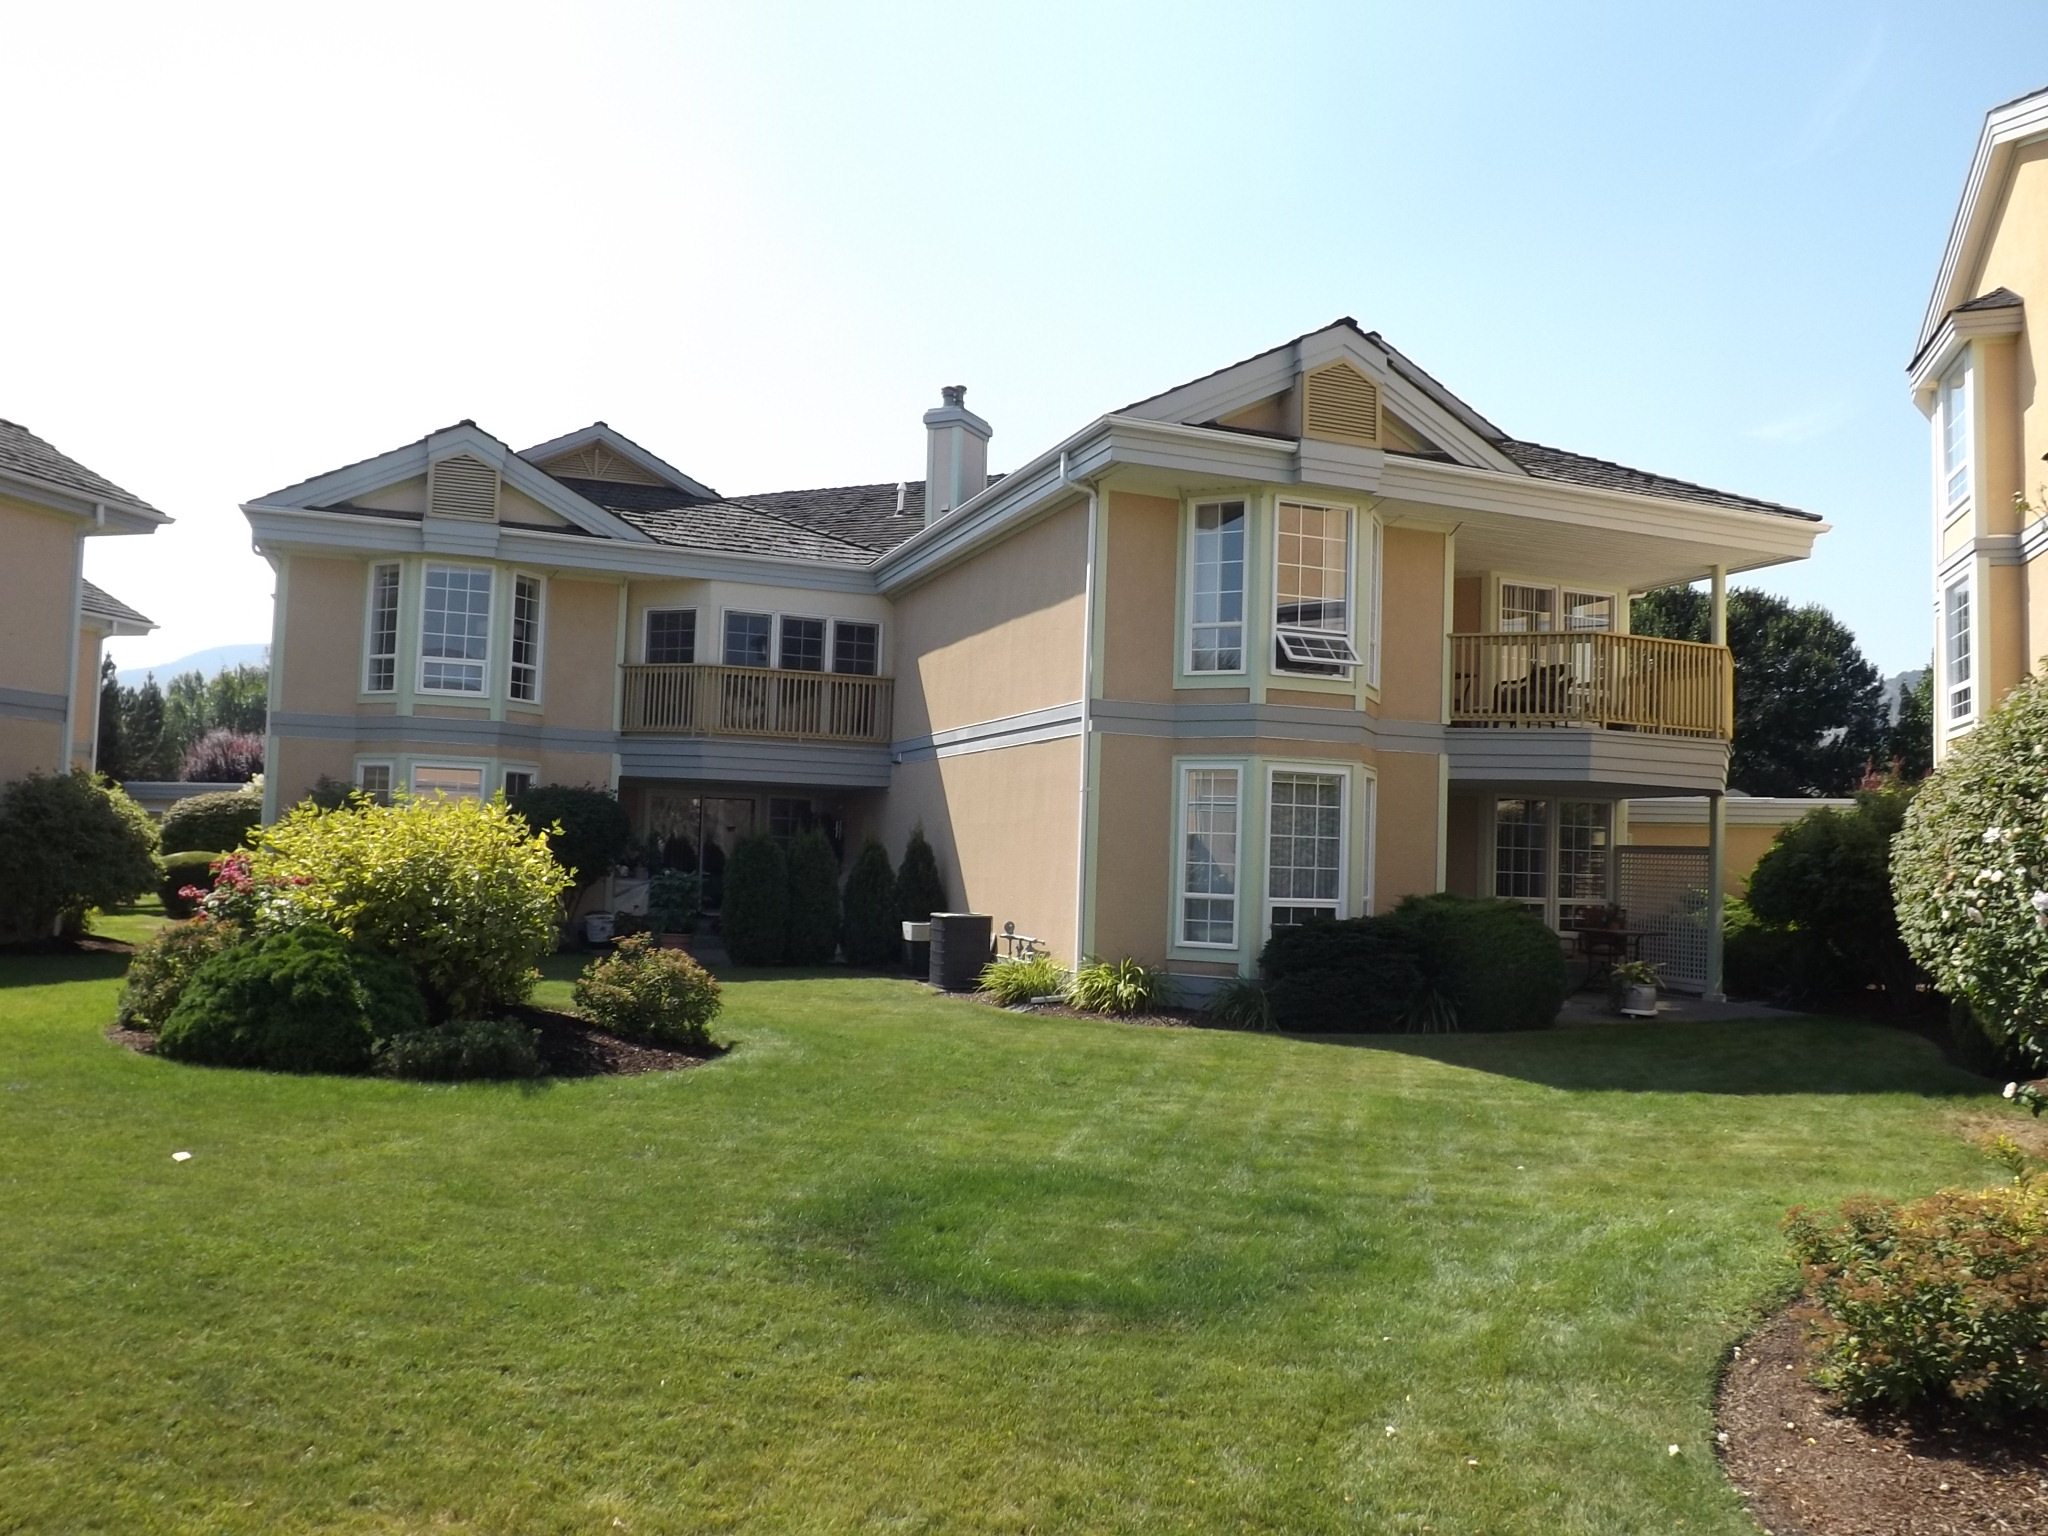 This is an example of a property located in Penticton, British Columbia whose Depreciation Report has been completed by Delta Appraisal Corporation